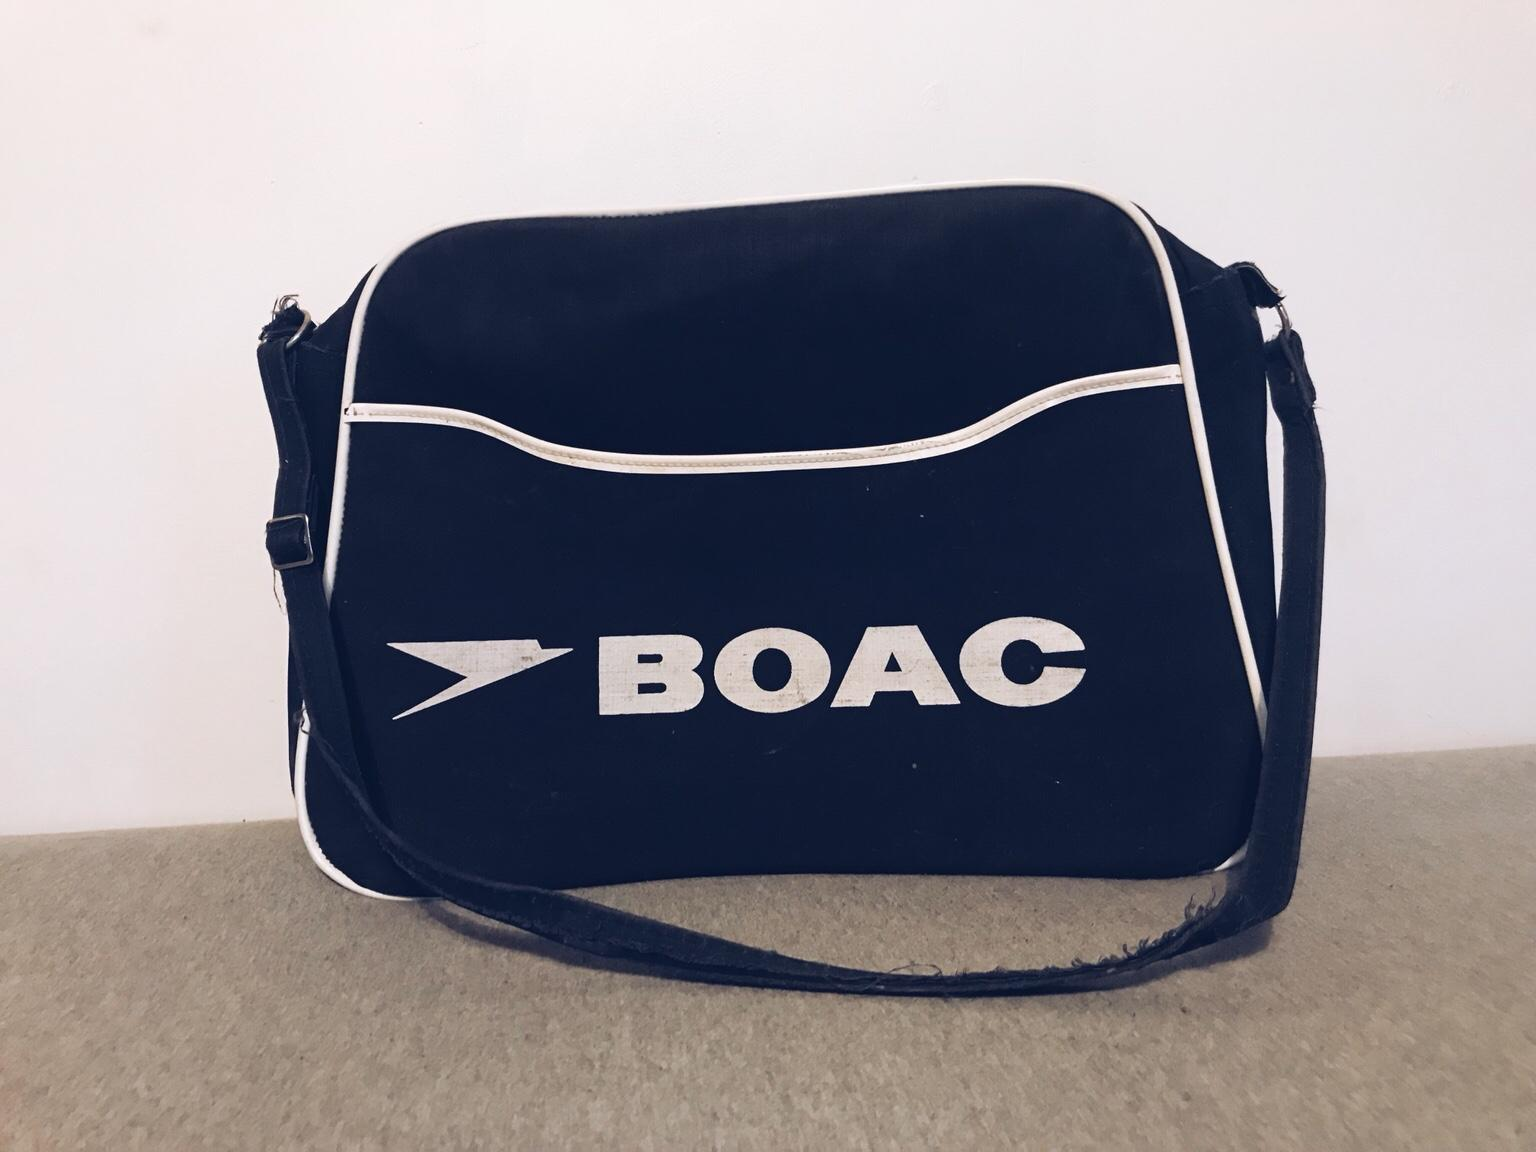 Vintage BOAC Bag (as used by The Beatles)